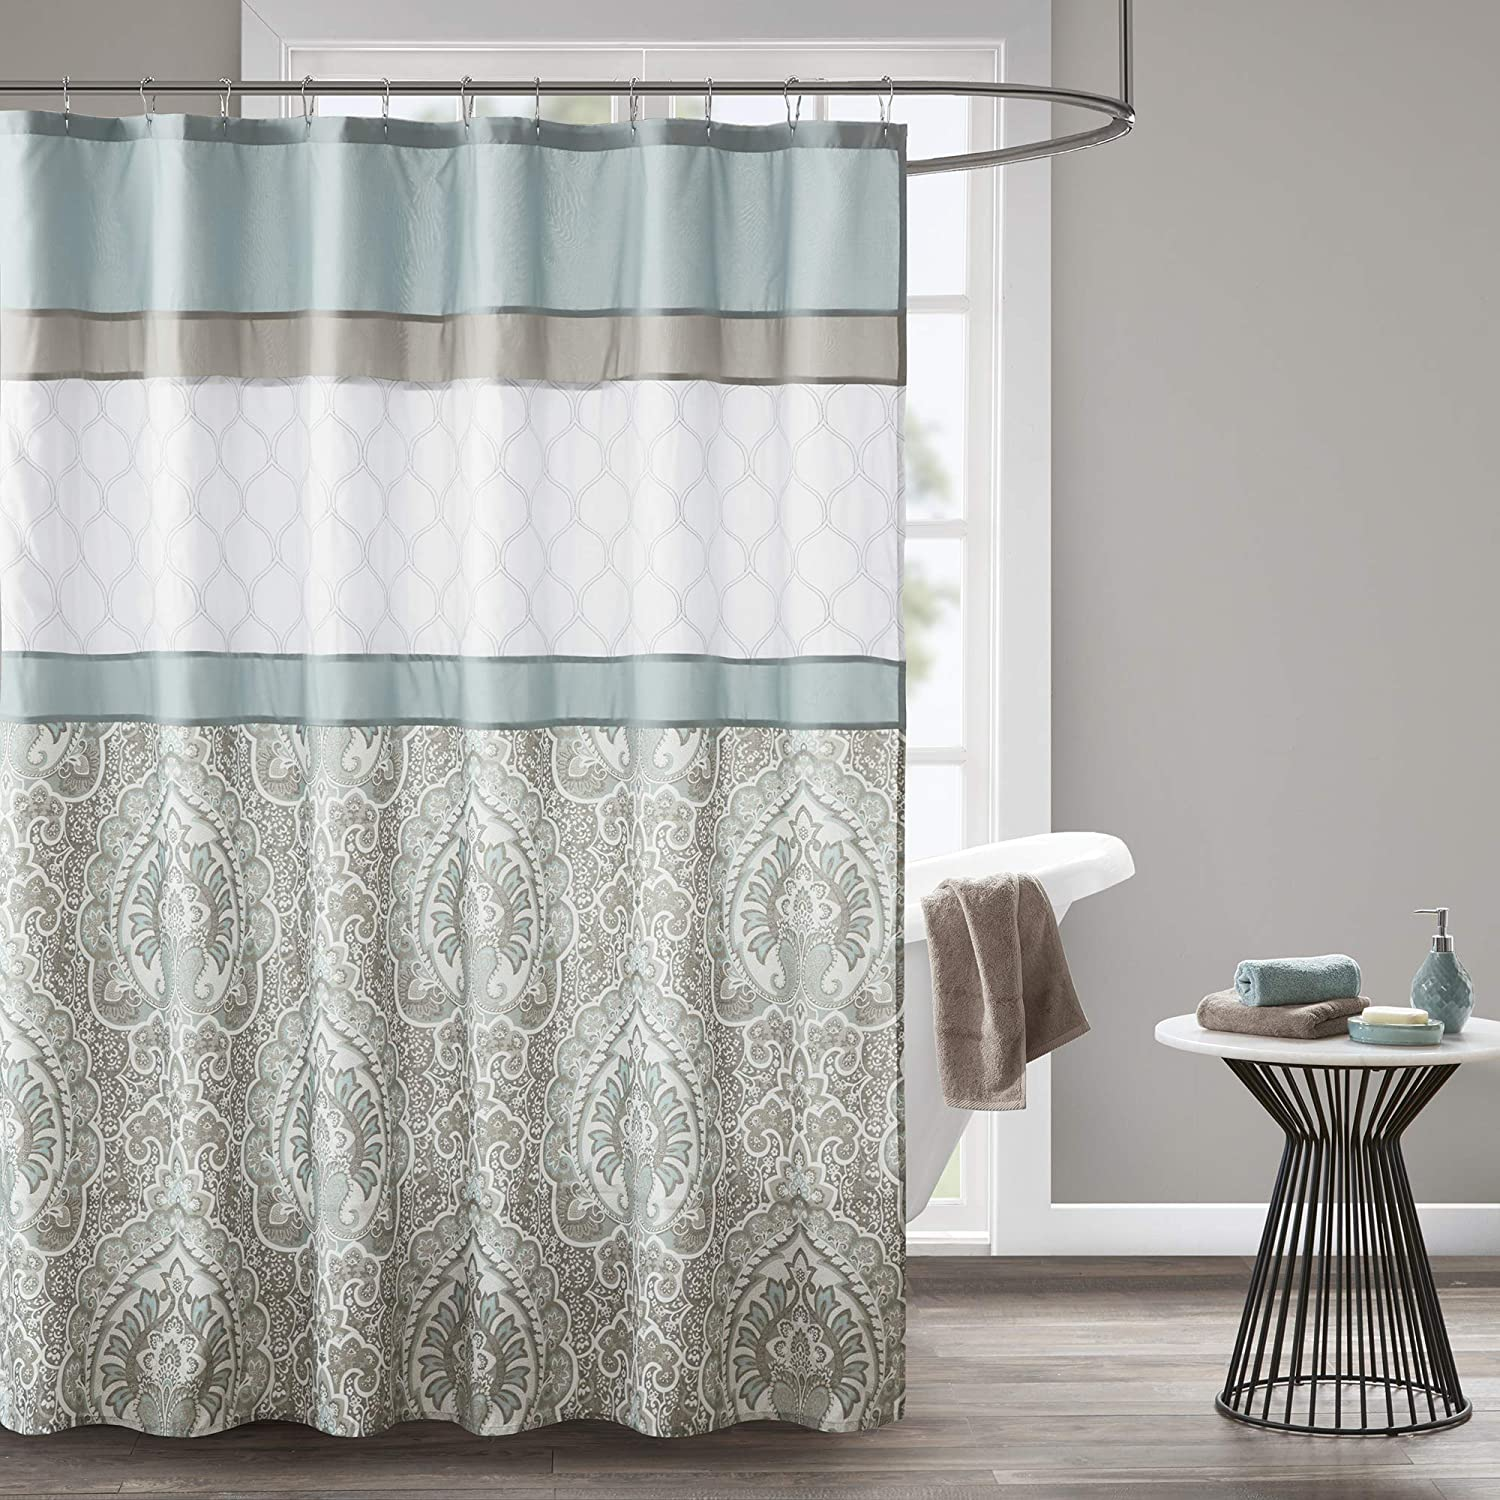 510 Design Shower Curtain, Geometric Textured Embroidery Design with Built-in Liner, Modern Mid-Century Bathroom Decor, Machine Washable, Fabric Privacy Screen 72x72, Shawnee, Blue